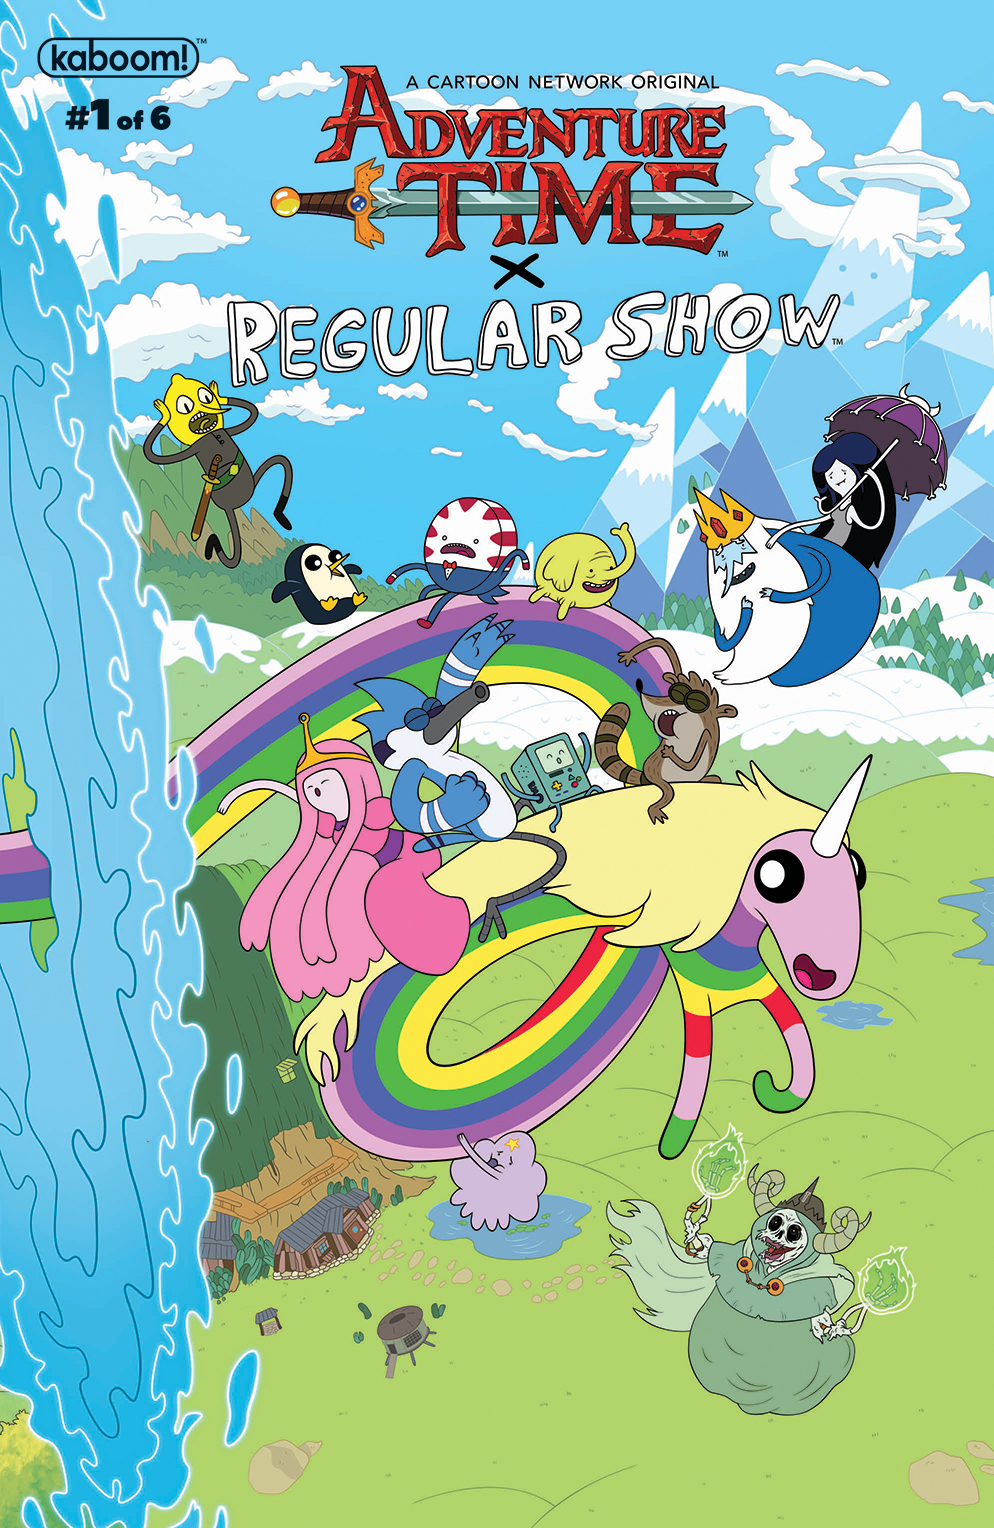 ADVENTURE TIME REGULAR SHOW #1 MAIN & MIX